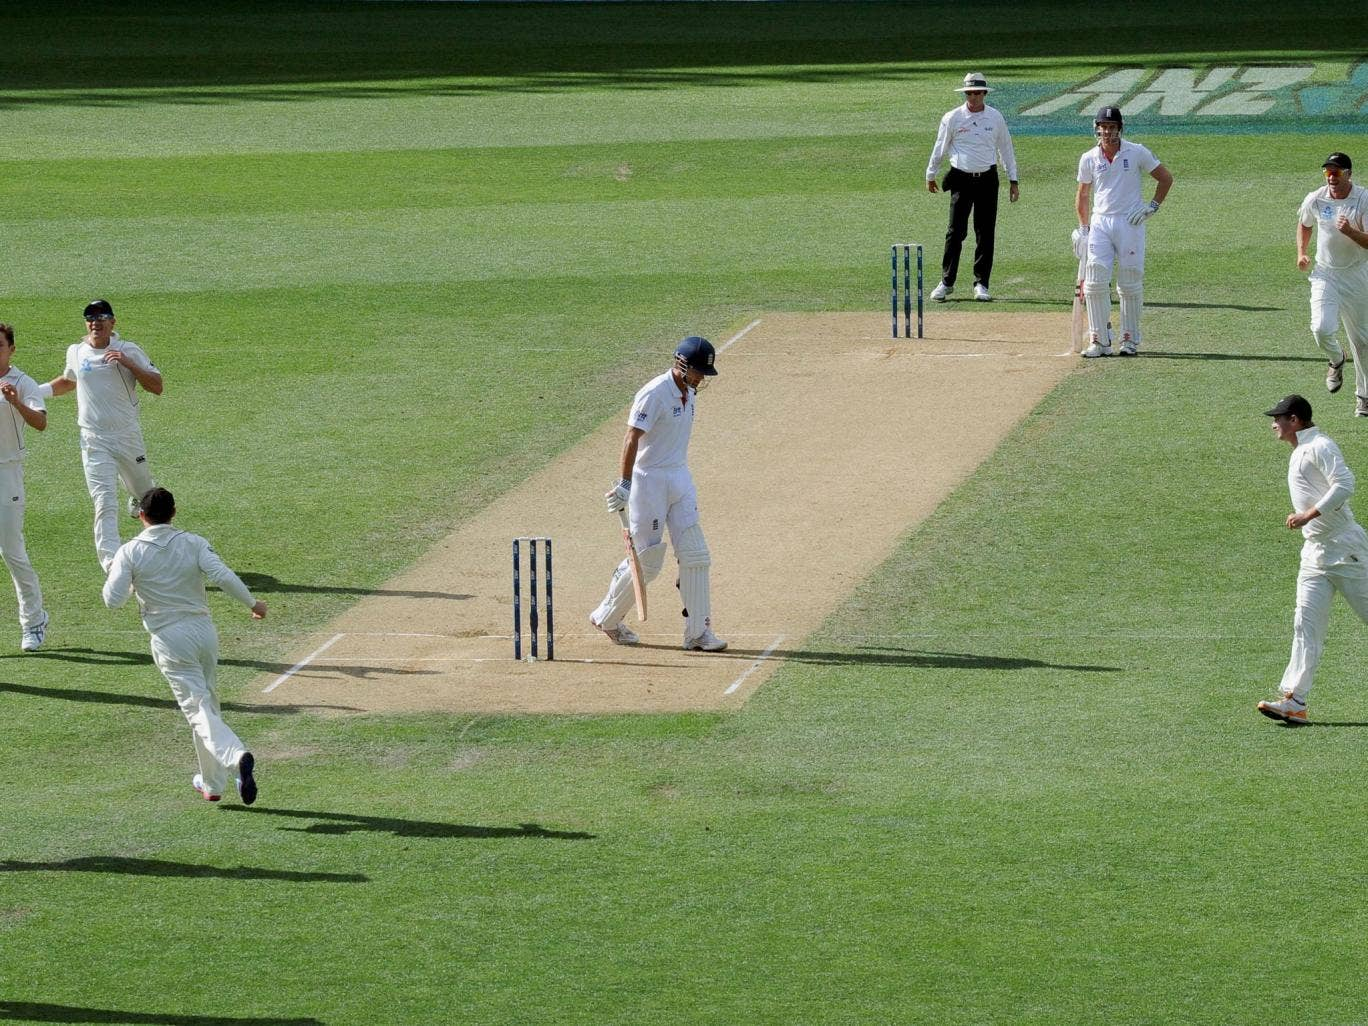 Boult from blue: England captain Alastair Cook is an early victim, caught behind off the bowling of Trent Boult